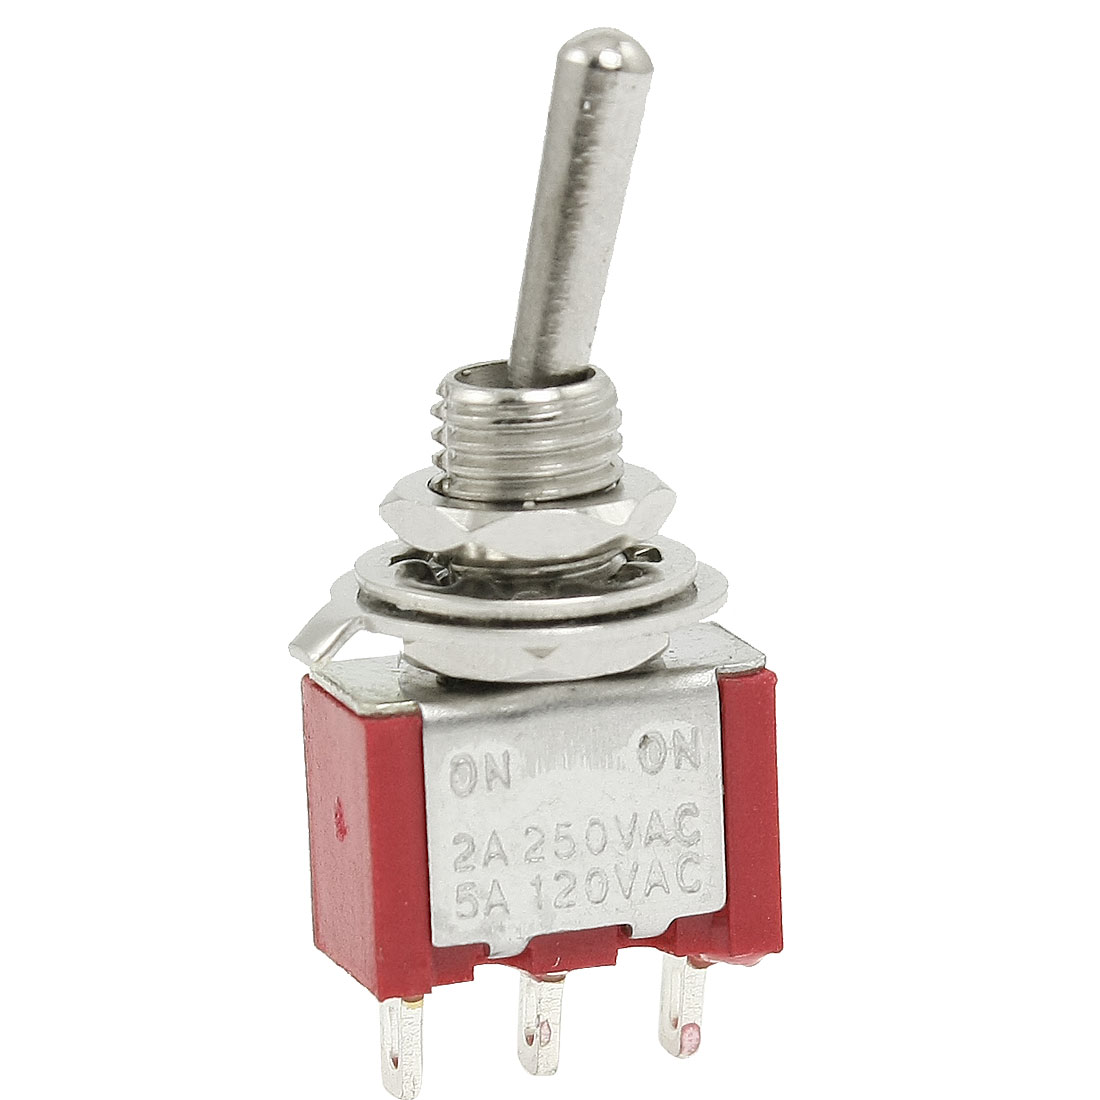 2A 250VAC 5A 120V AC ON/ON SPDT Miniature Toggle Switch